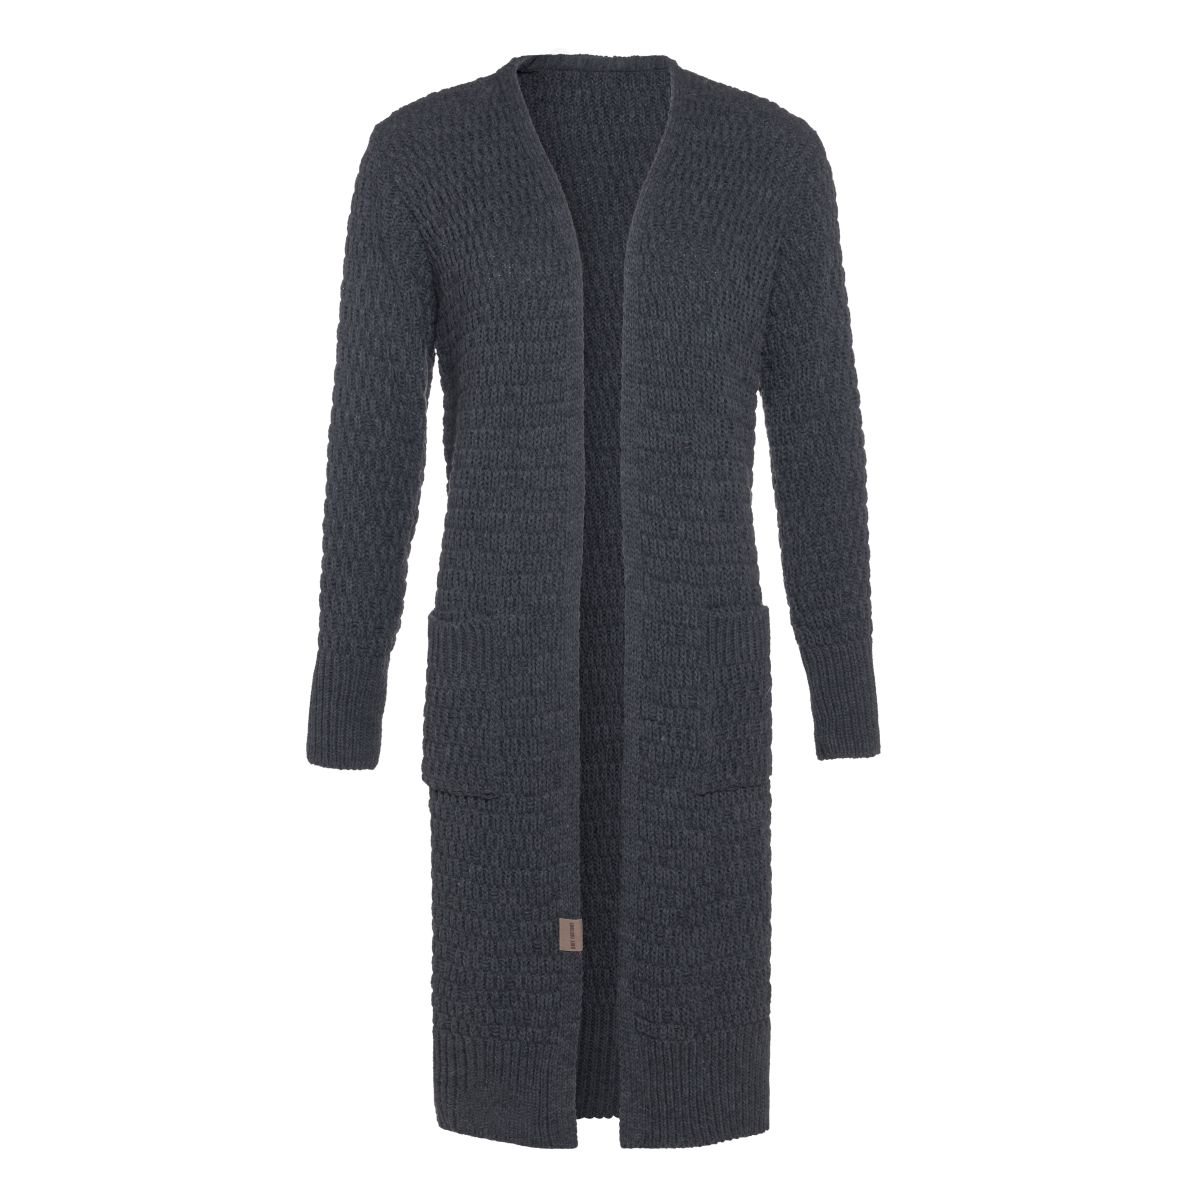 jaida long knitted cardigan anthracite 3638 with side pockets